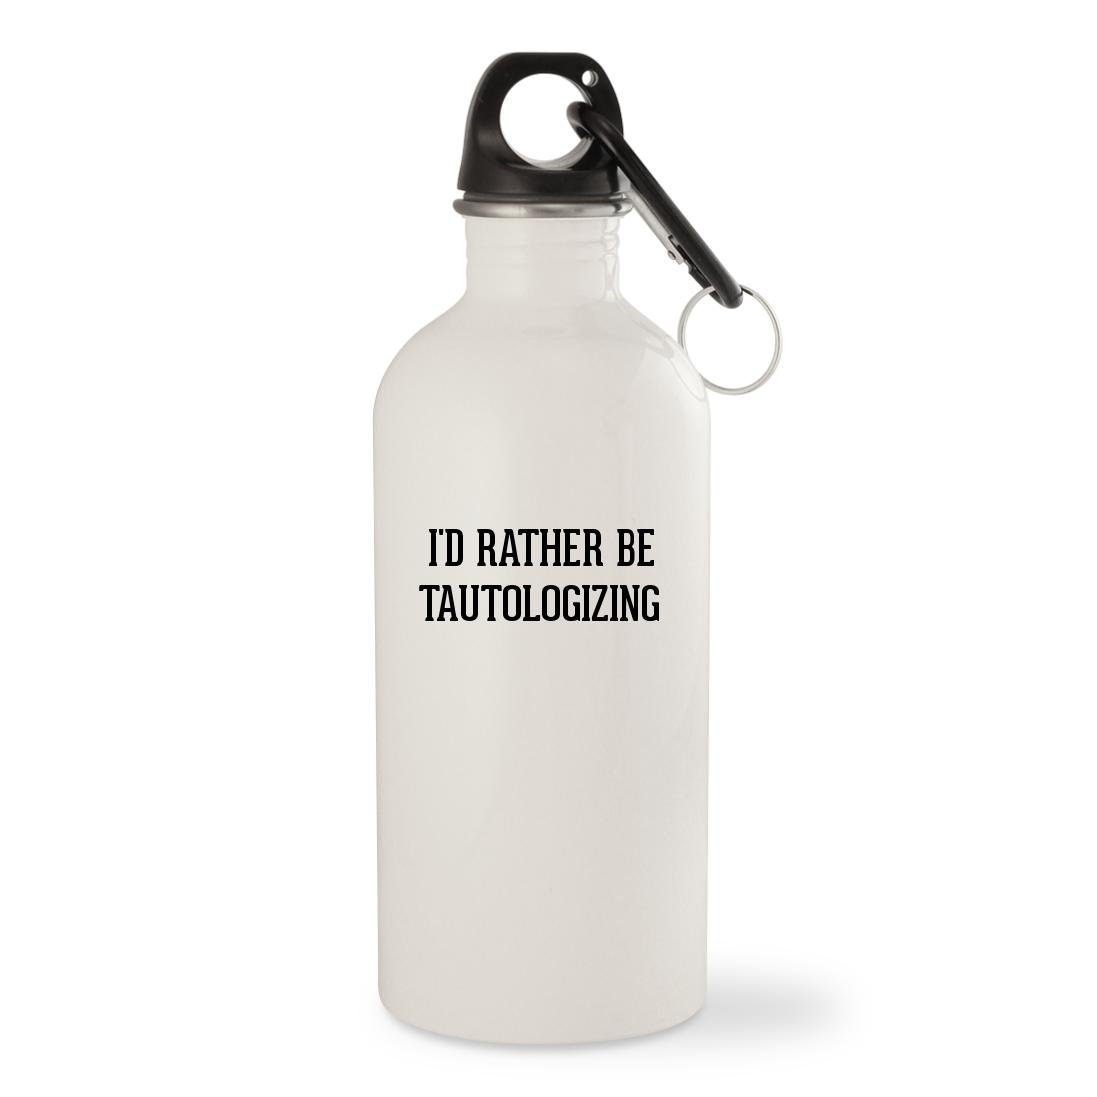 I'd Rather Be TAUTOLOGIZING - White 20oz Stainless Steel Water Bottle with Carabiner